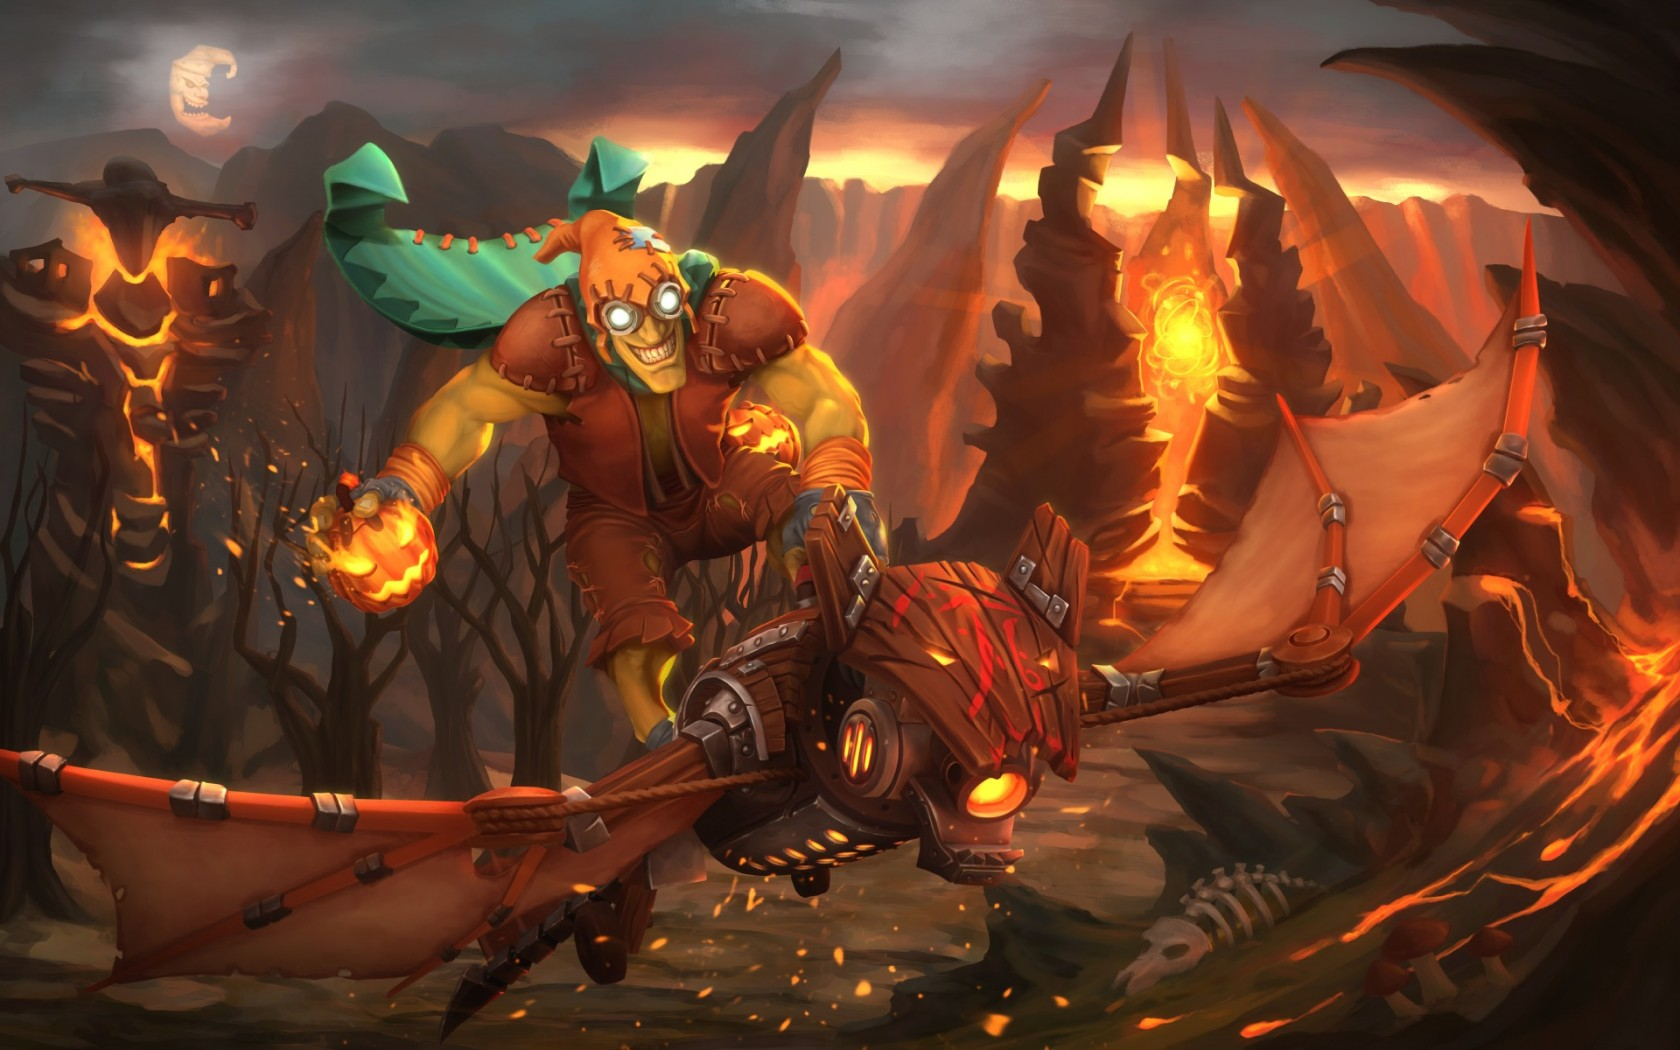 batrider desktop backgrounds high resolution dota 2